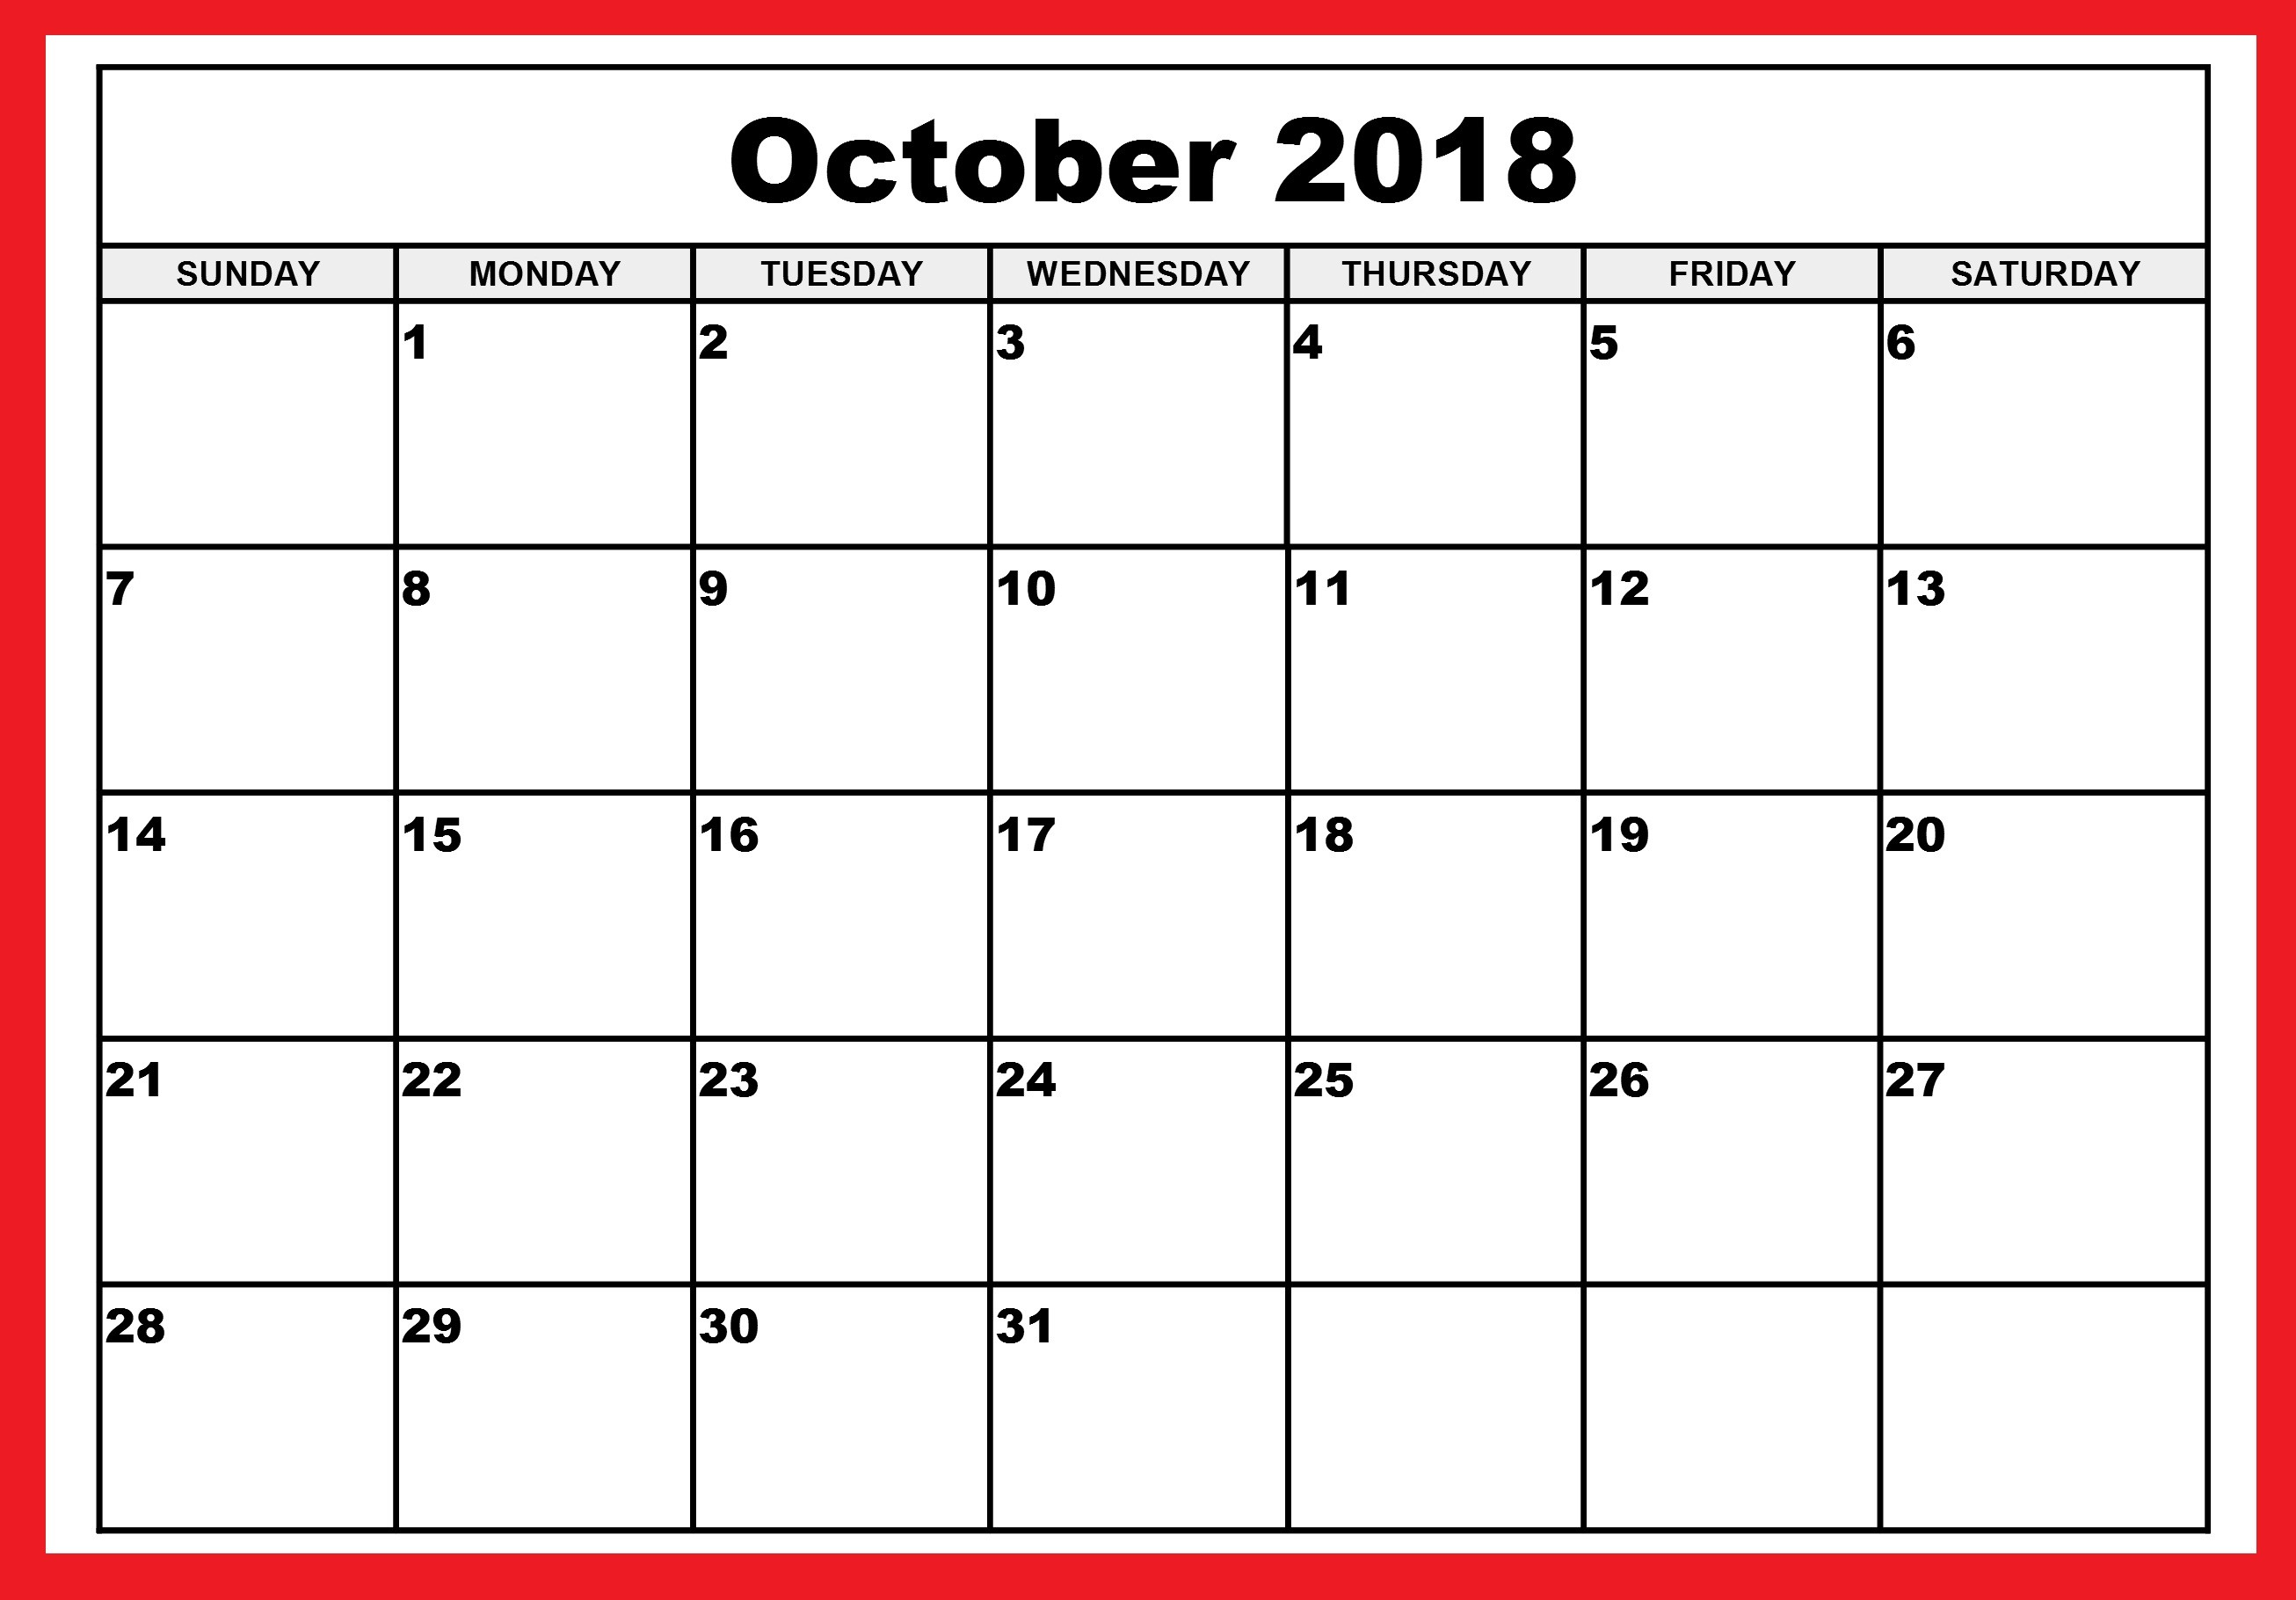 6 month calendar october to march 2019 calendar editable template